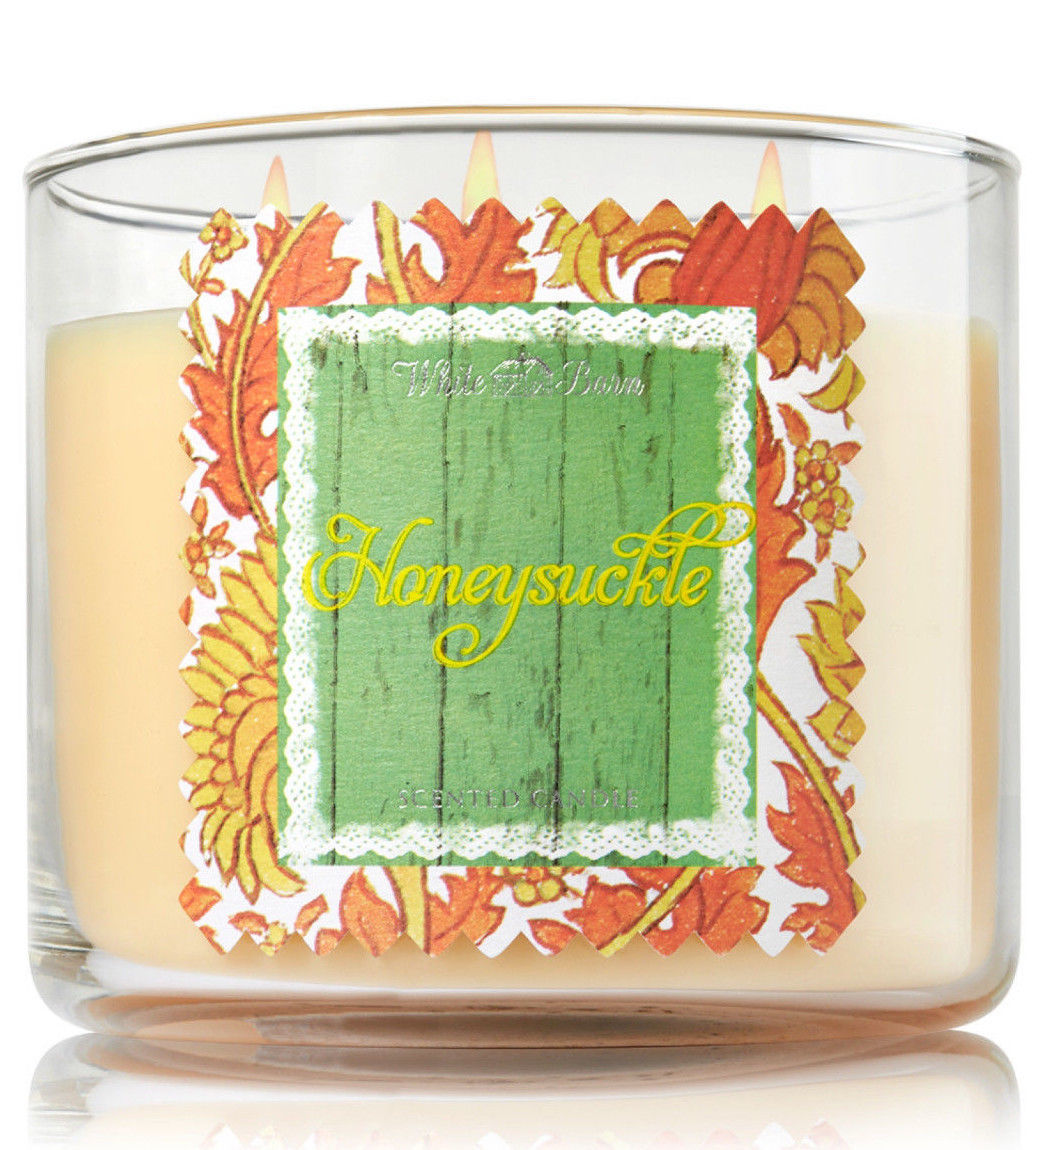 Bath & Body Works Honeysuckle Three Wick 14.5 Ounces Scented Candle image 3